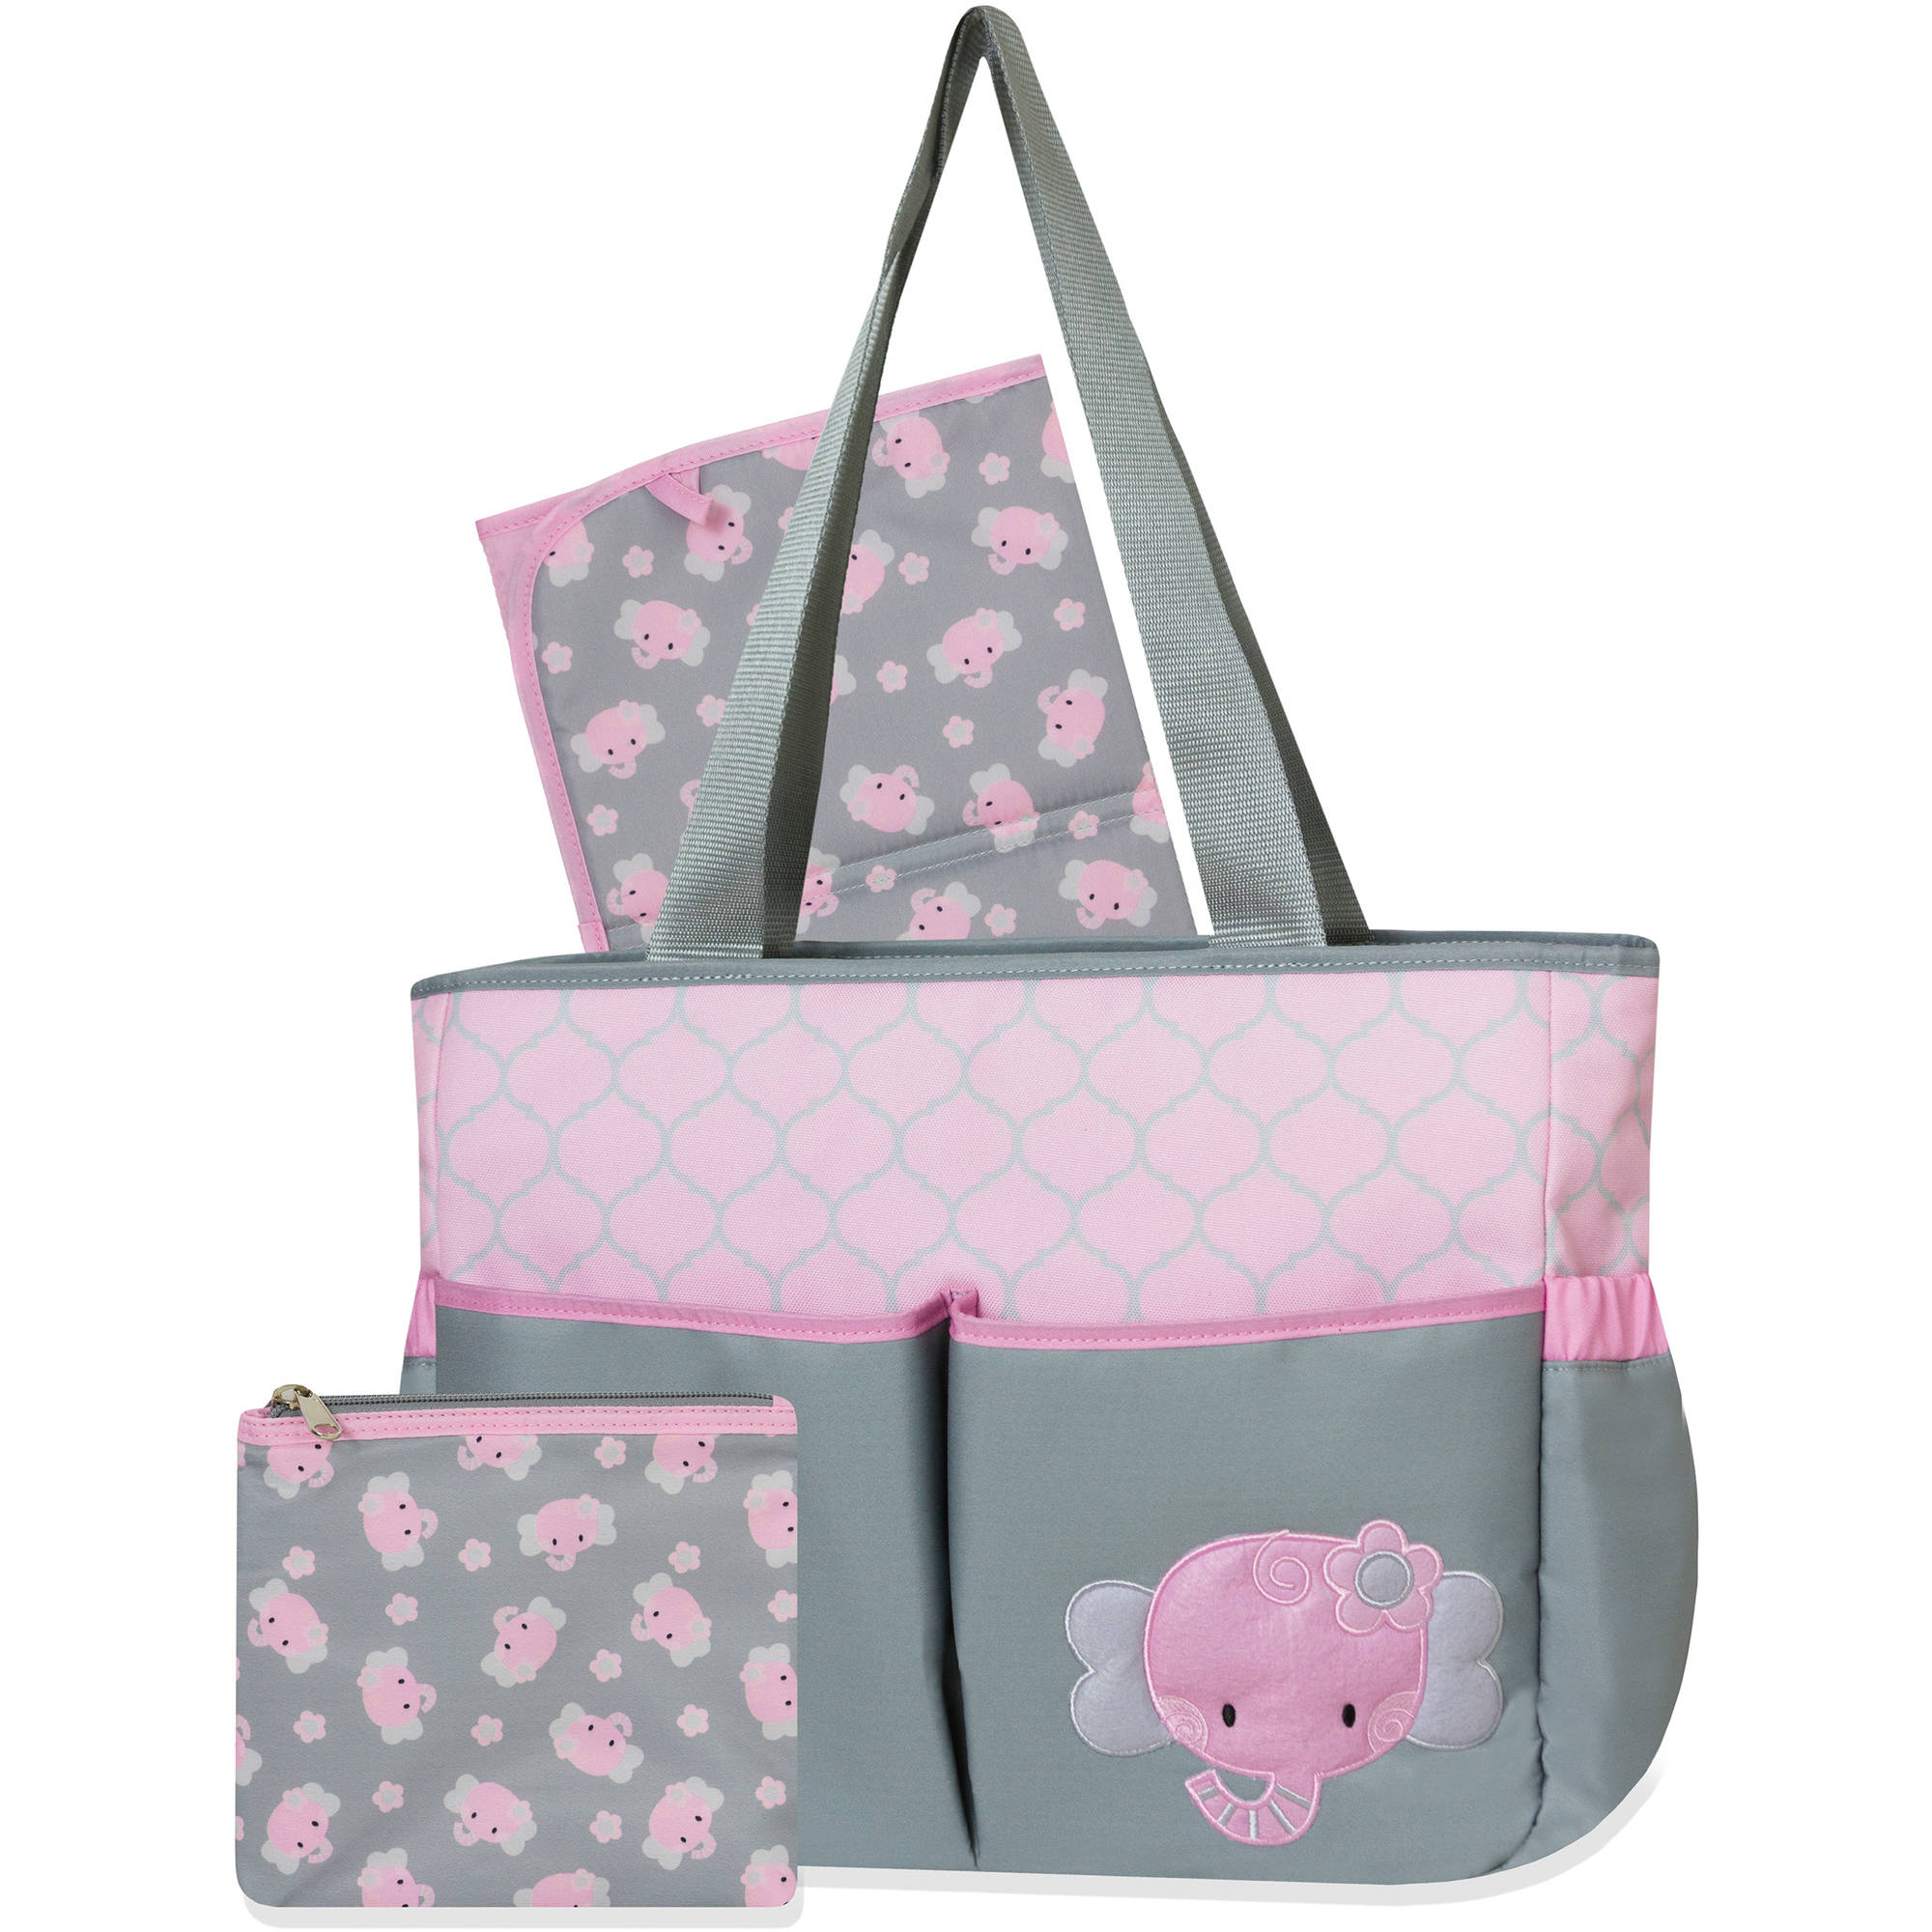 Tender Kisses Elephant Diaper Bag Set with Bonus Zipper Pouch